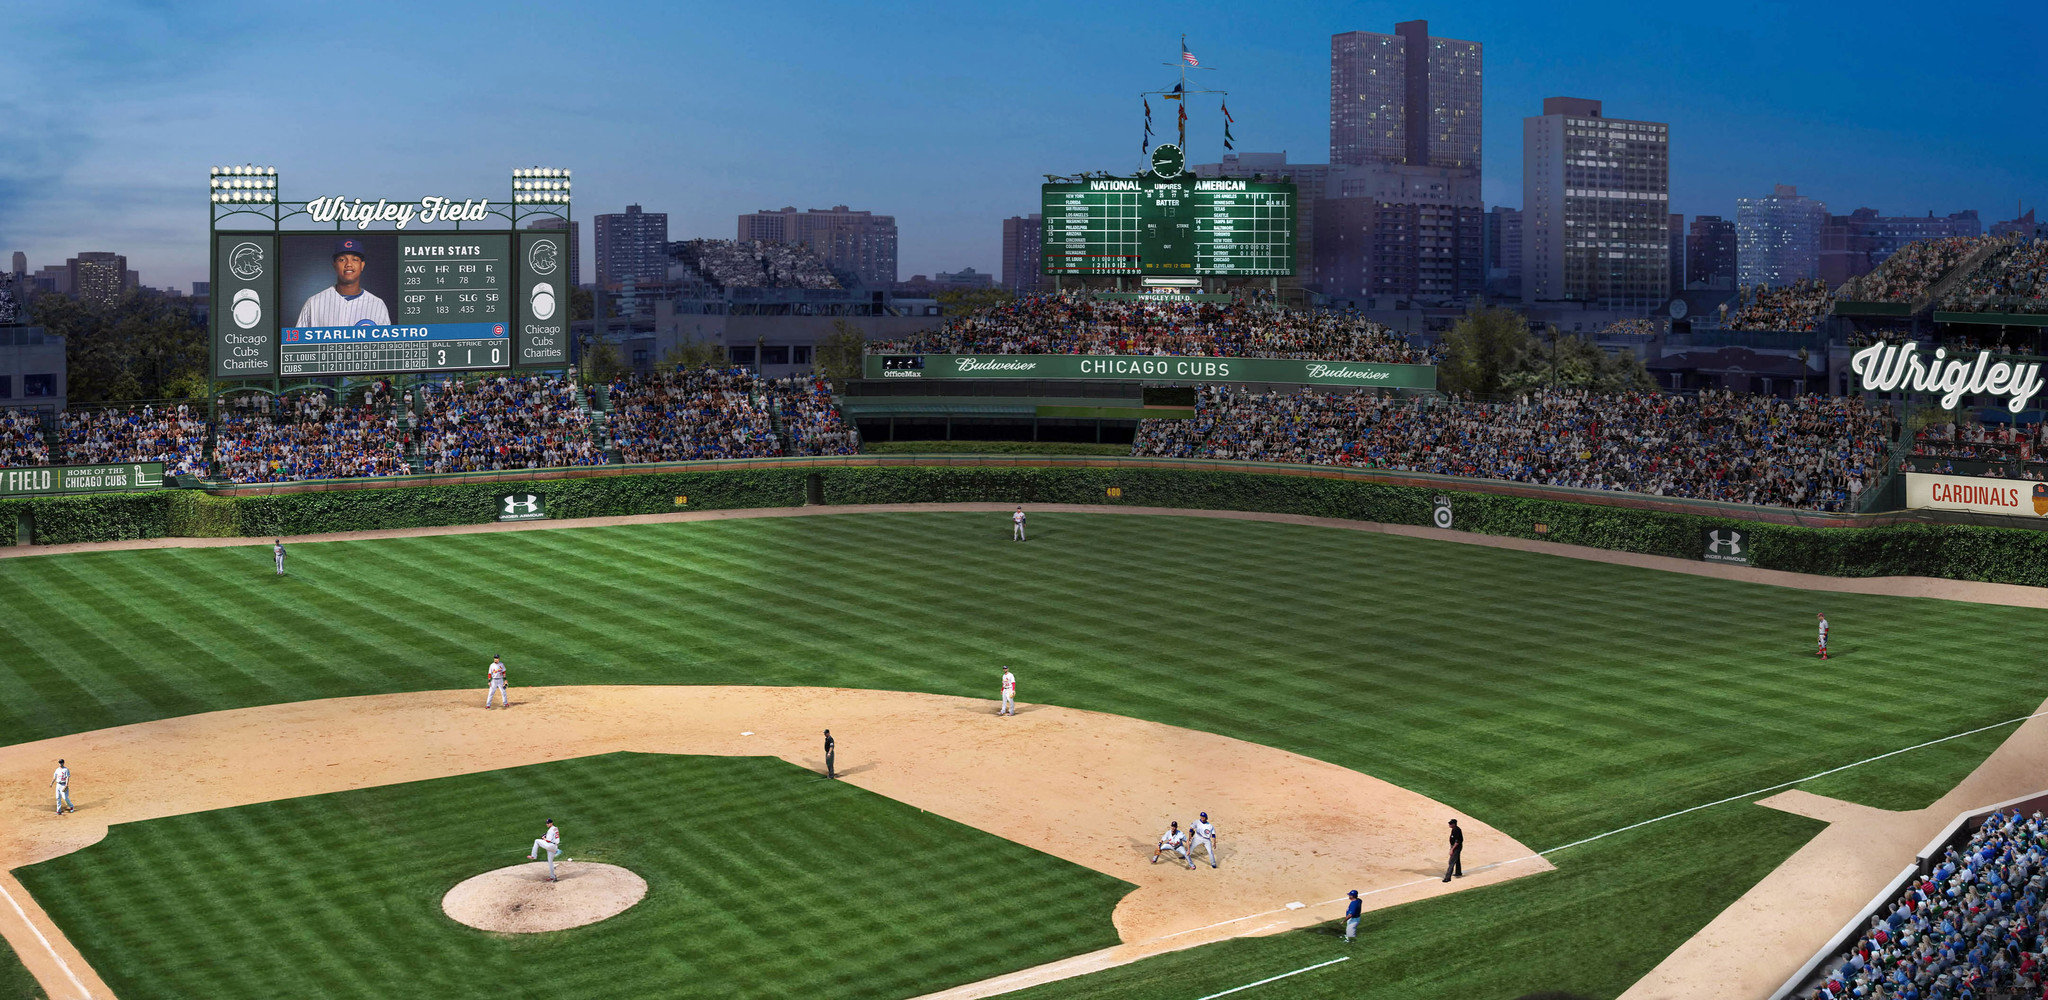 Delightful Wrigley Field Section 213 Row 3 Seat 4 Chicago Cubs Vs Part 27